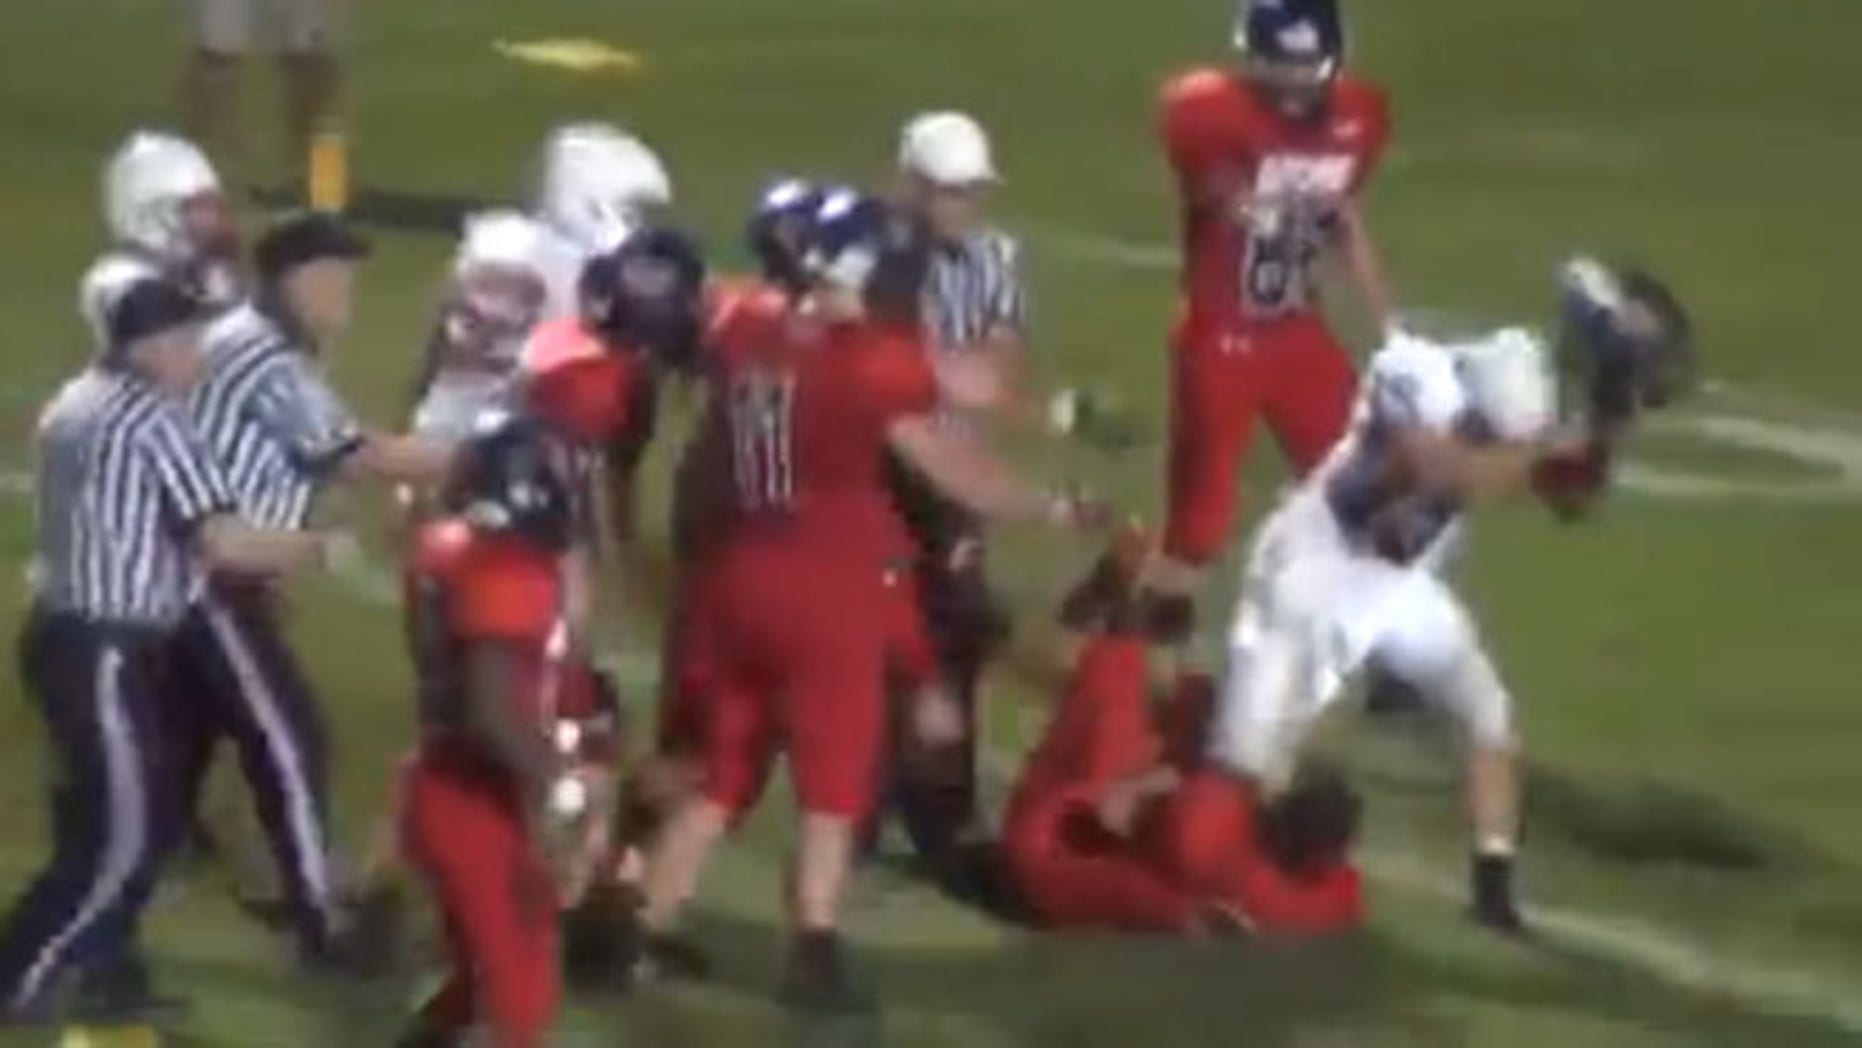 Video from a September high school video game went viral after authorities say a player took the helmet off another player and struck him on the head with it.